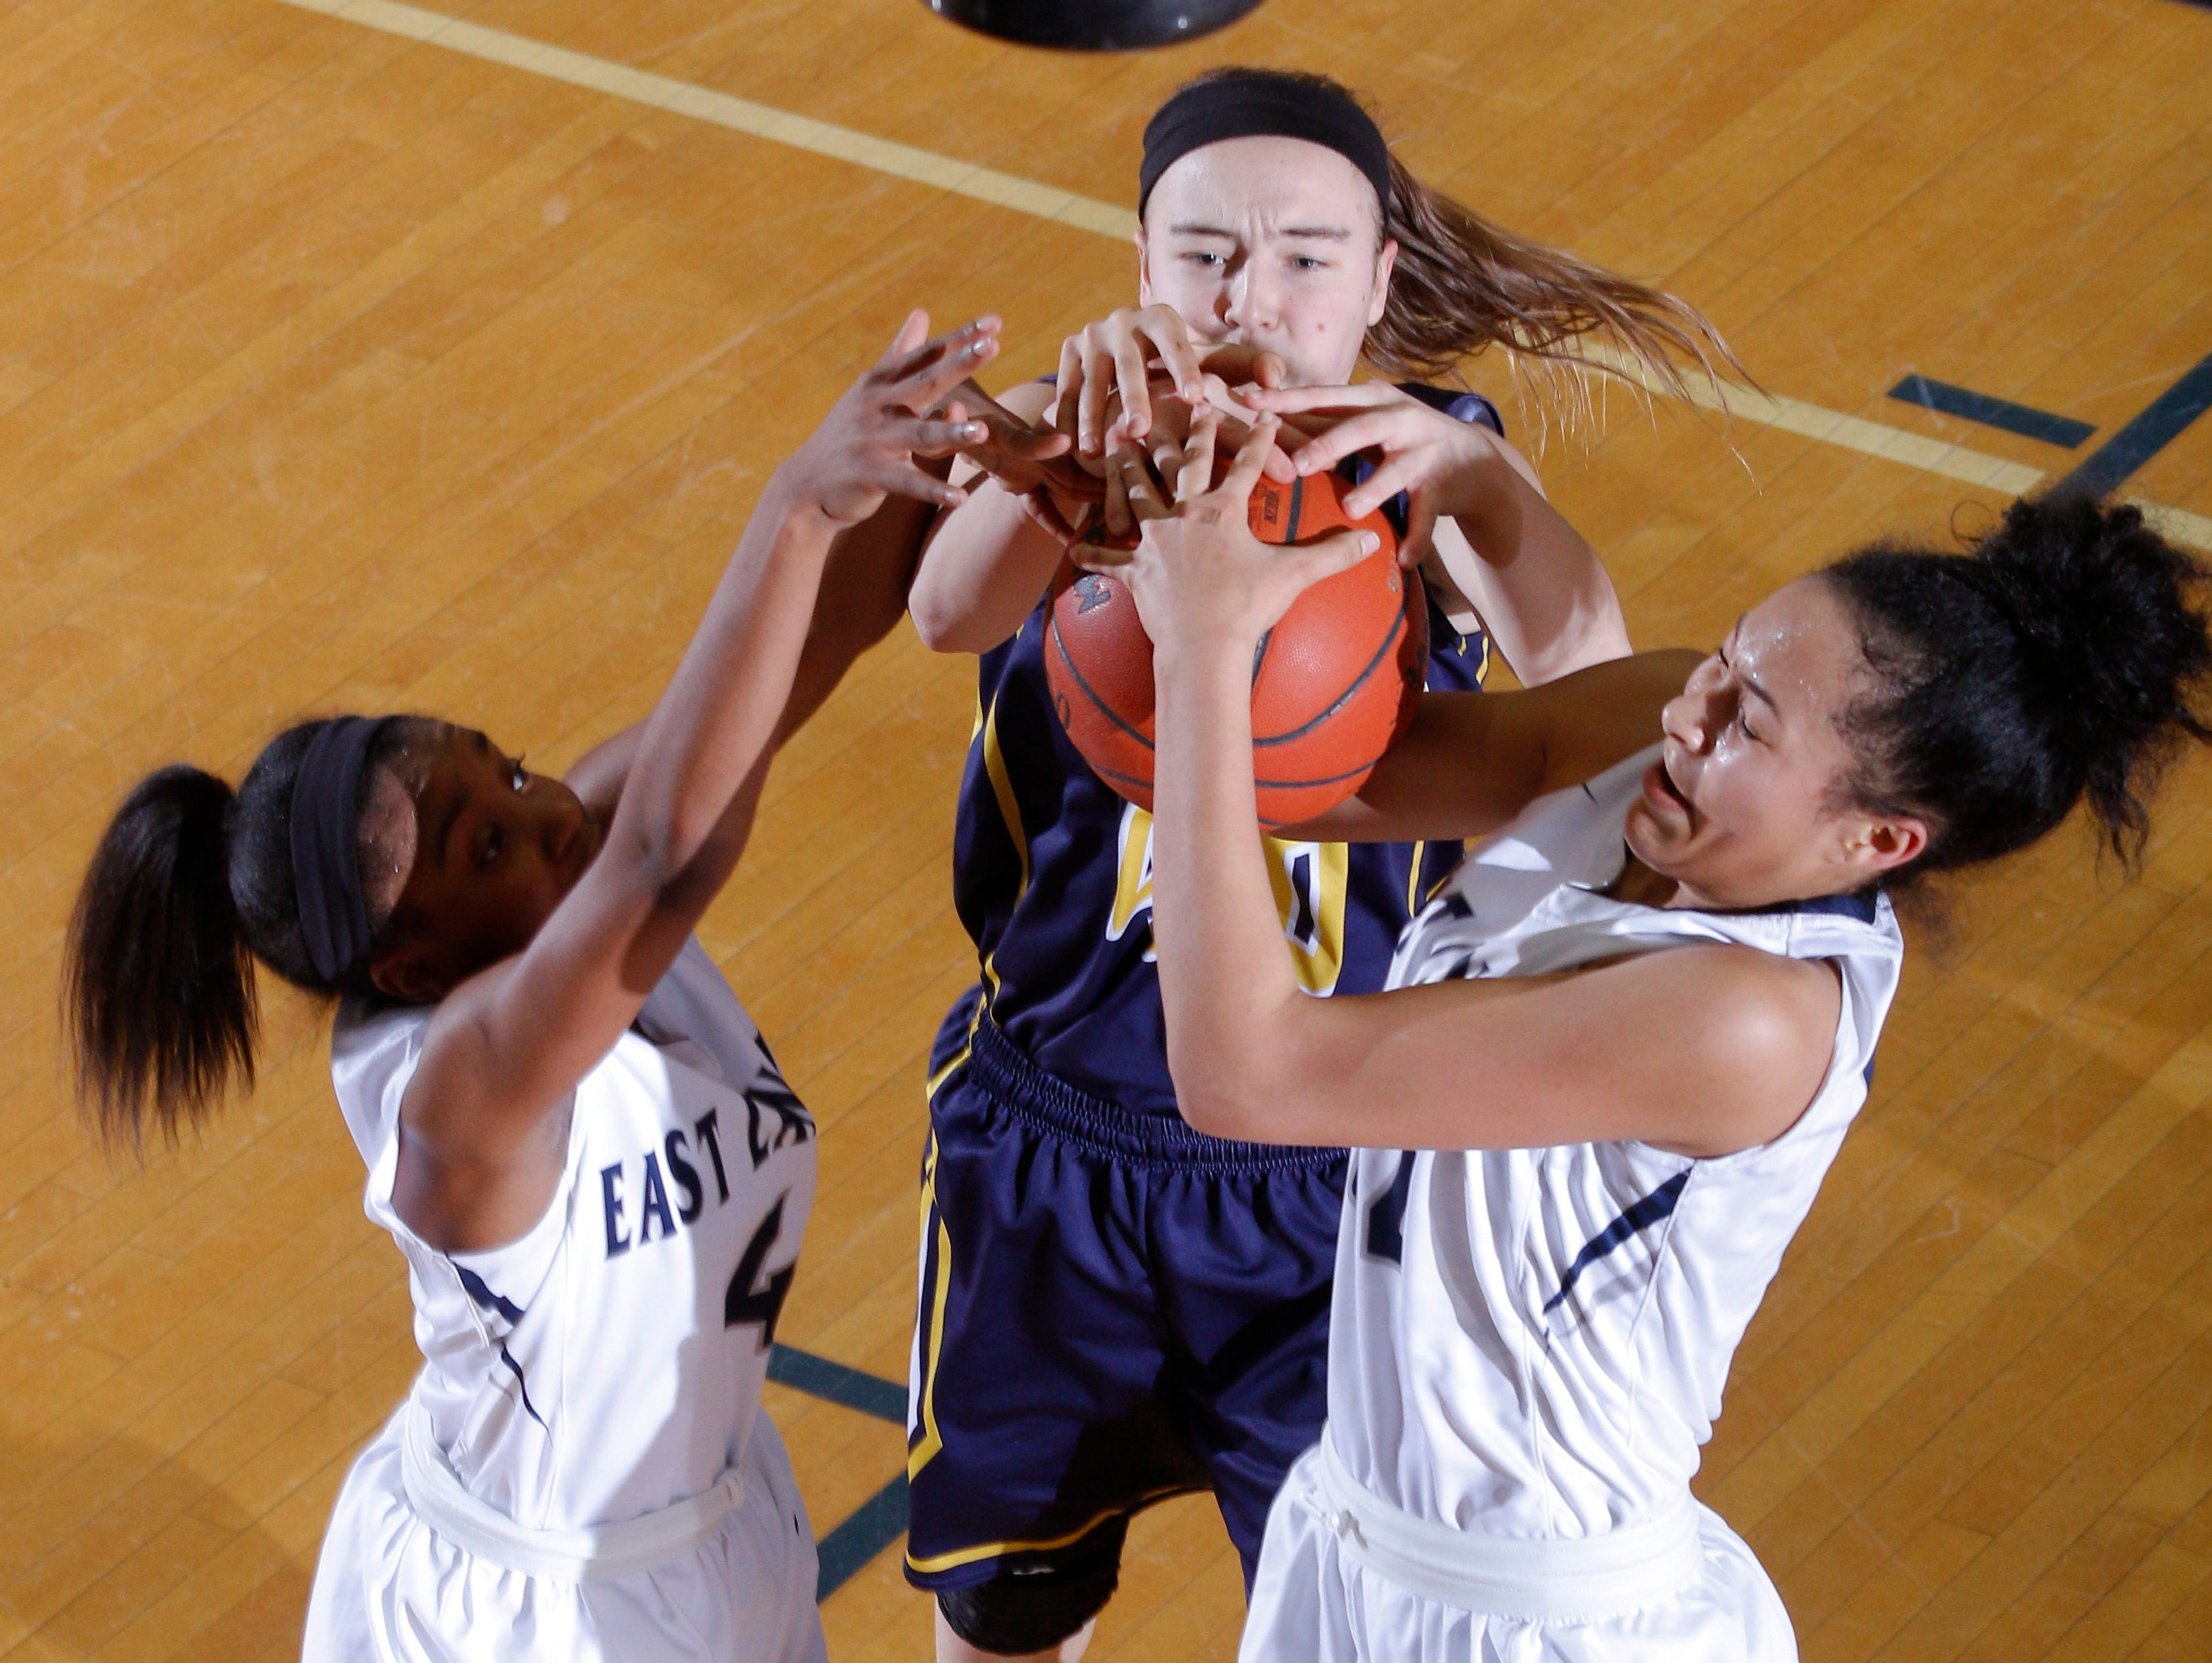 East Lansing's Sanaya Gregory, left, and Aaliyah Nye, right, and DeWitt's Madison Petersen, center, battle for a rebound during their district final game Friday, March 3, 2017, in East Lansing, Mich. East Lansing won 48-47.